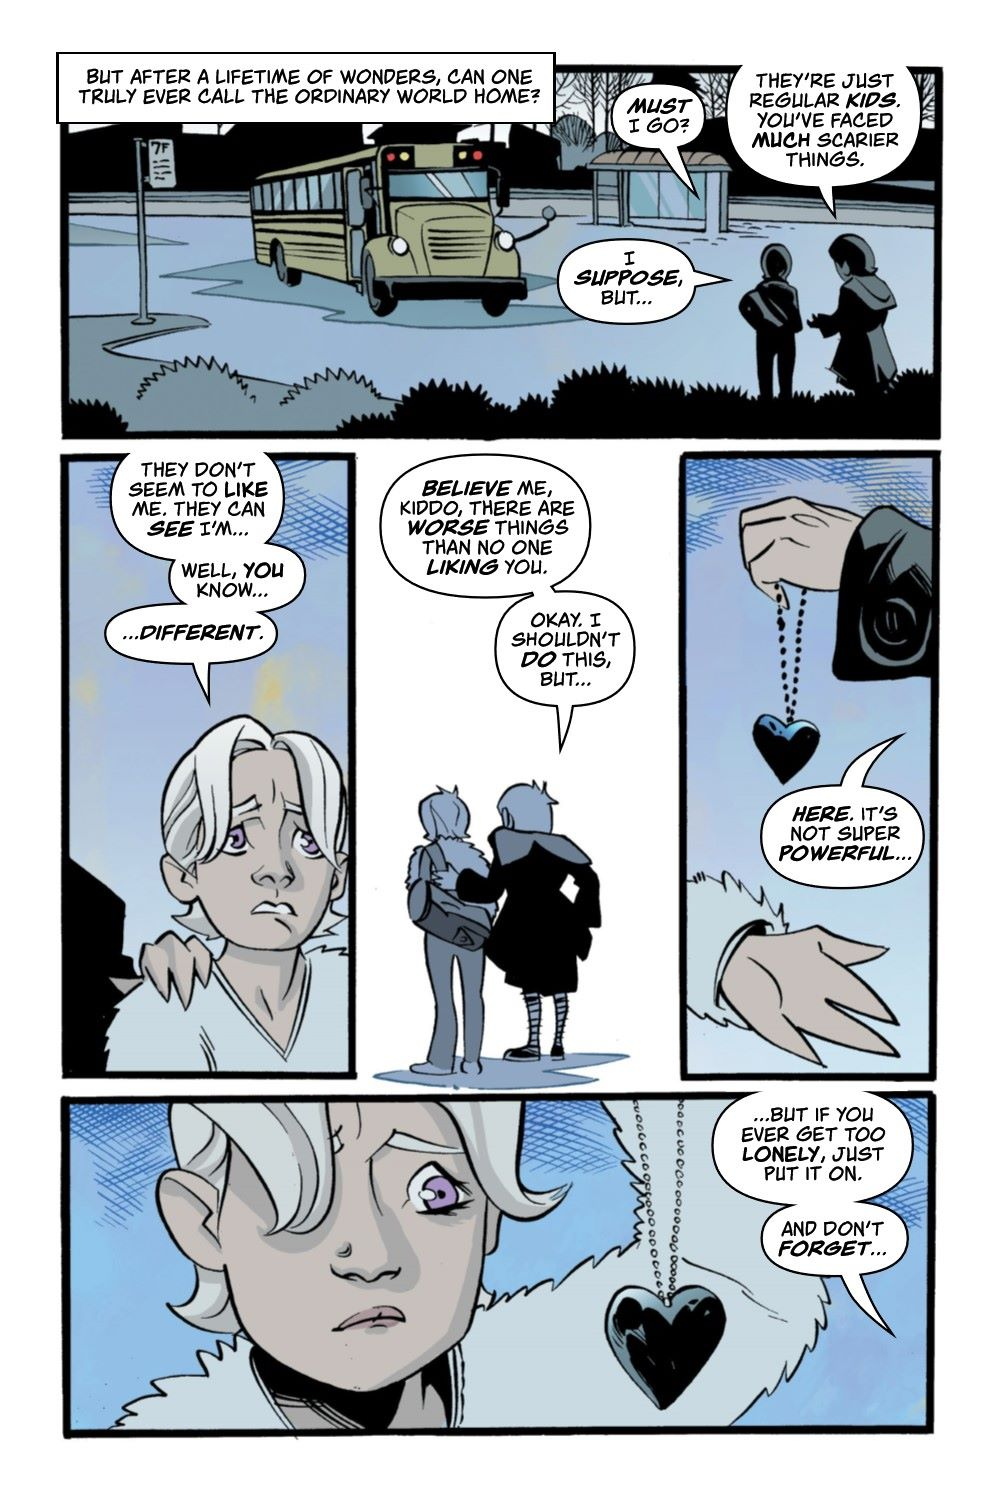 CRUMCHRON-V1-REFERENCE-012 ComicList Previews: THE CRUMRIN CHRONICLES VOLUME 1 THE CHARMED AND THE CURSED TP